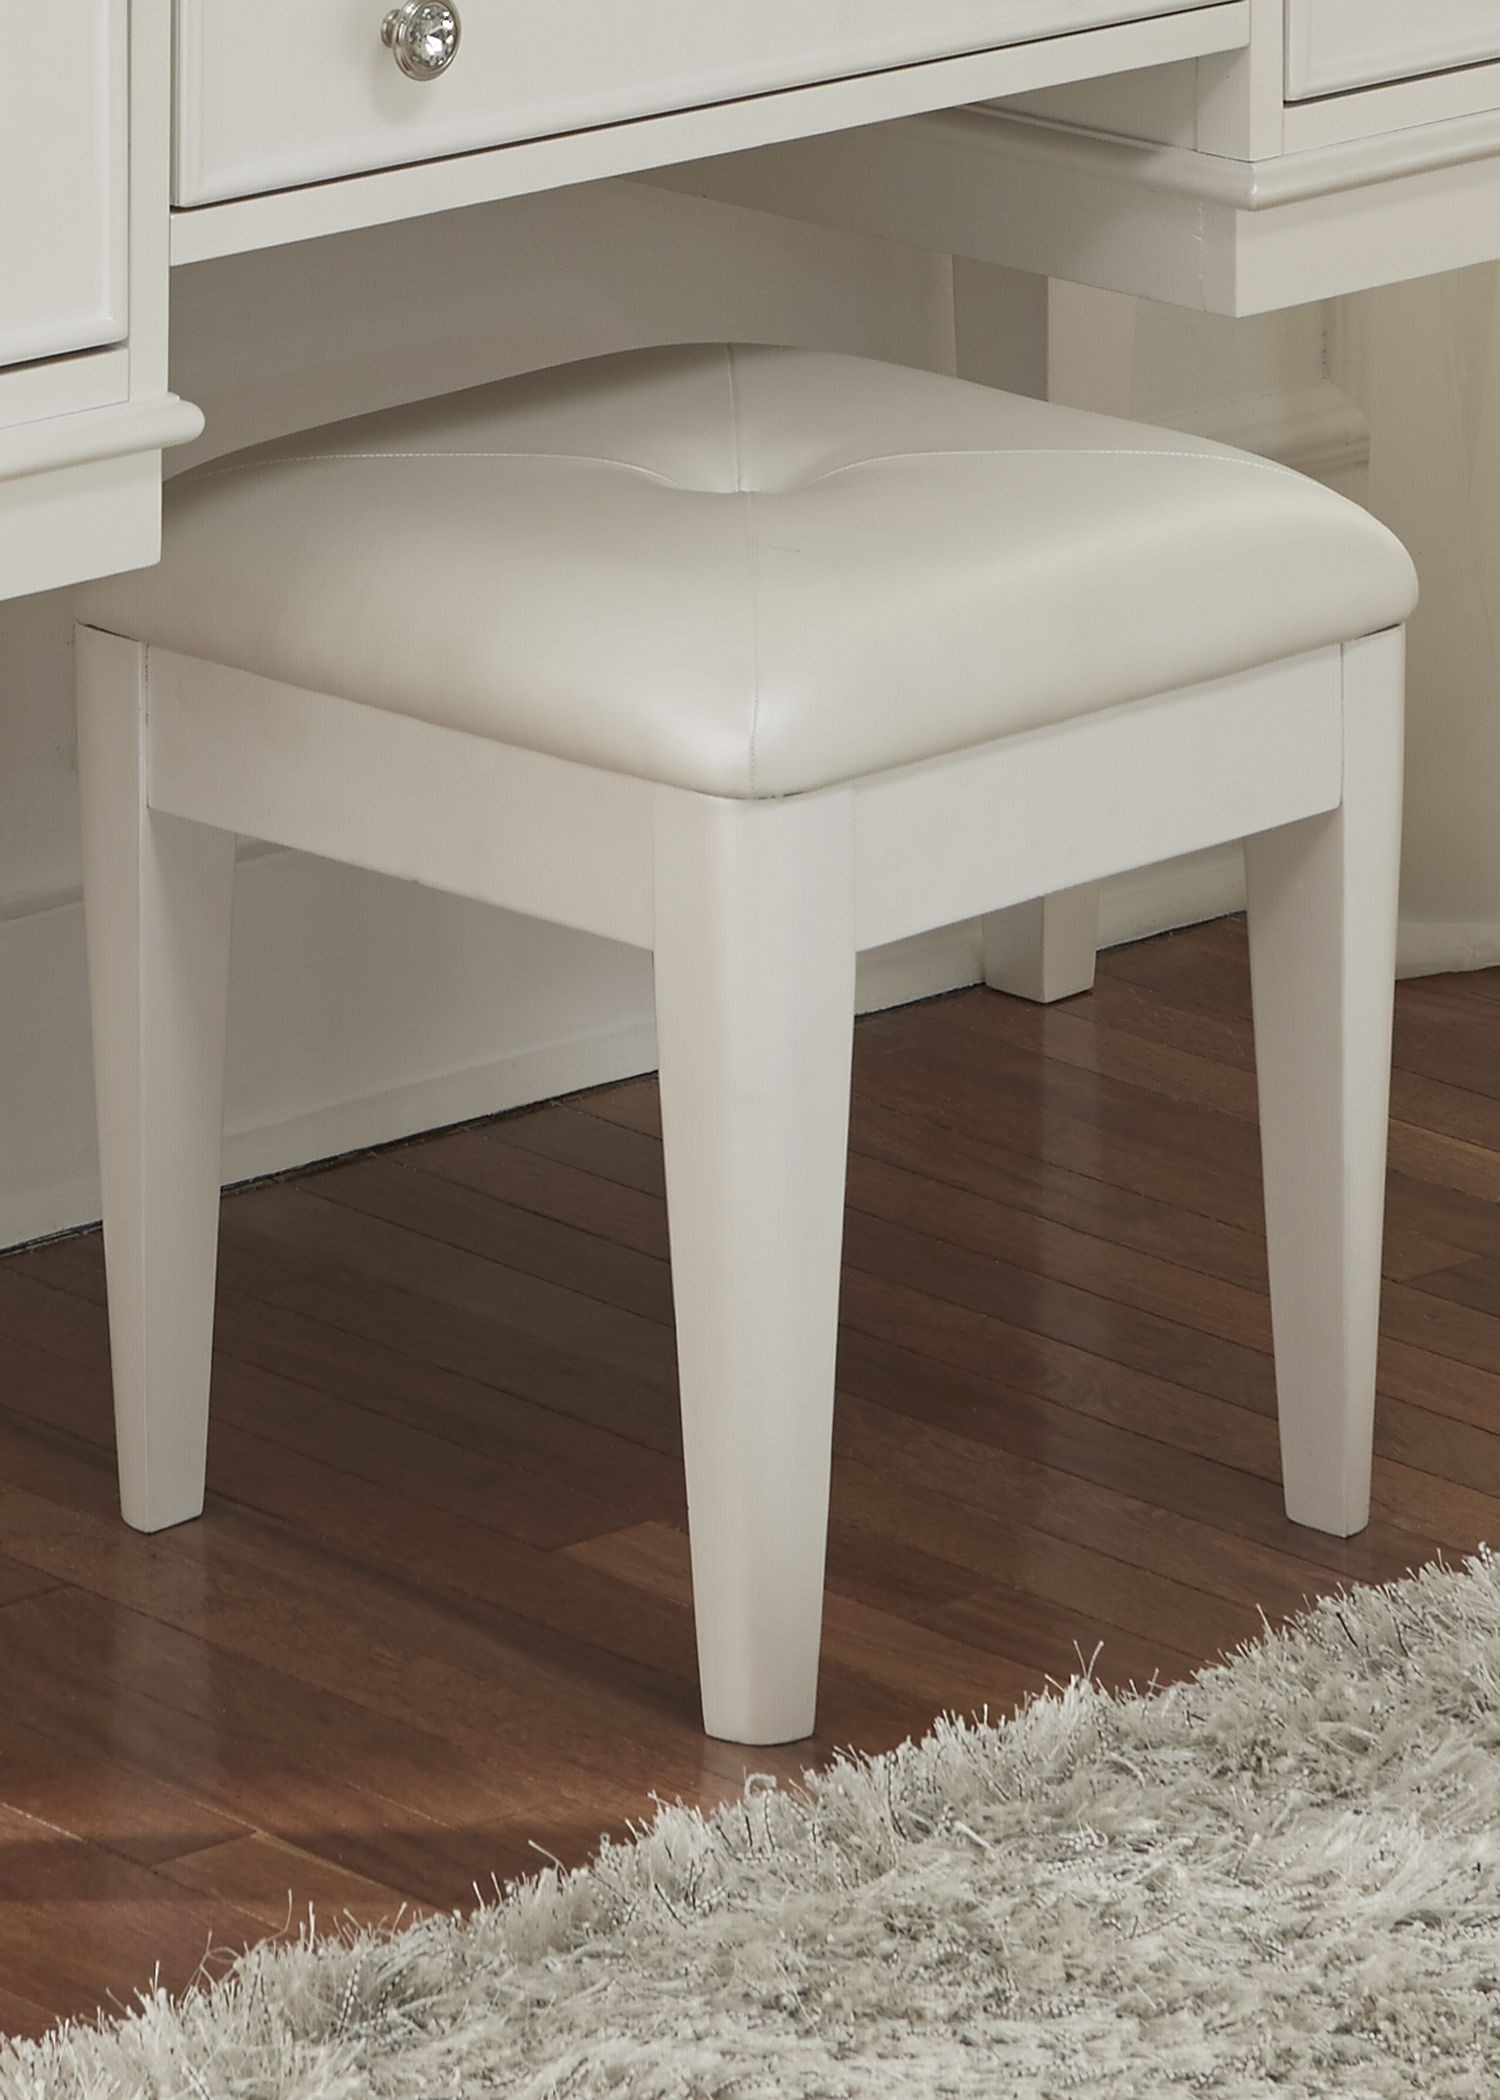 Stardust Iridescent White Vanity Bench From Liberty 710 Br48 Coleman Furniture